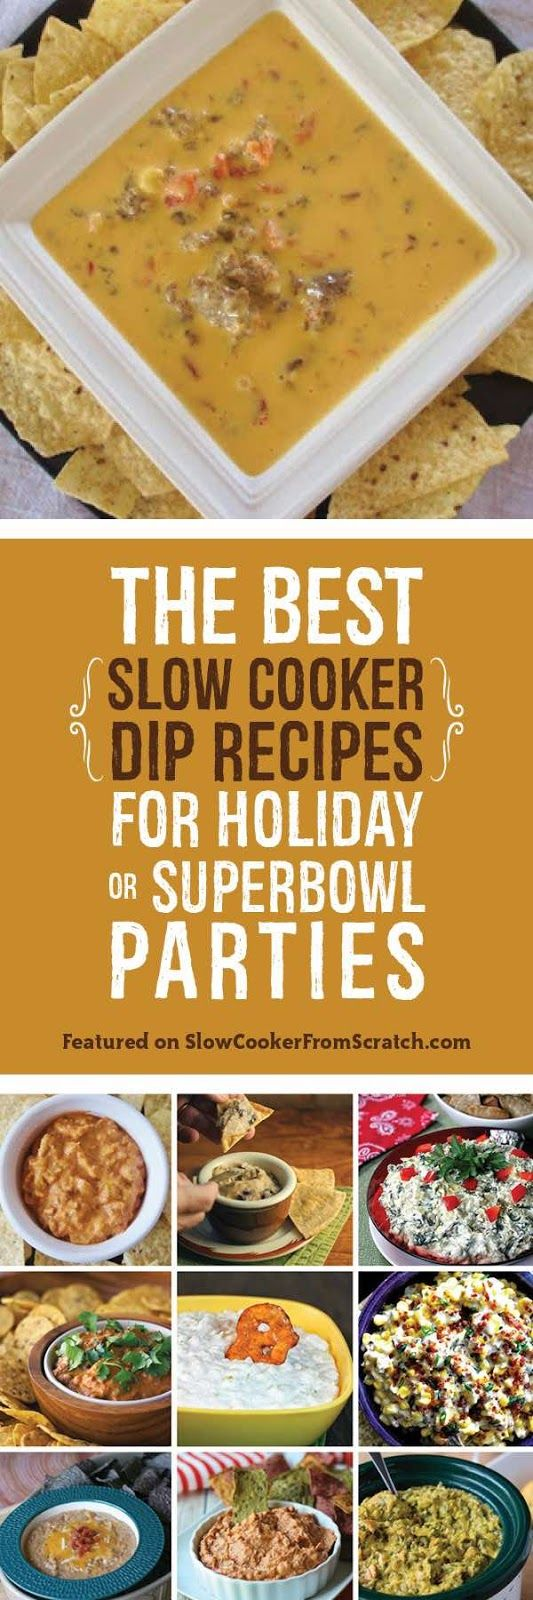 The Best Slow Cooker Dip Recipes for Holiday or Superbowl Parties; these are the best dips I could find from some of the best food blogs on the web!  [found on SlowcookerFromScratch.com]